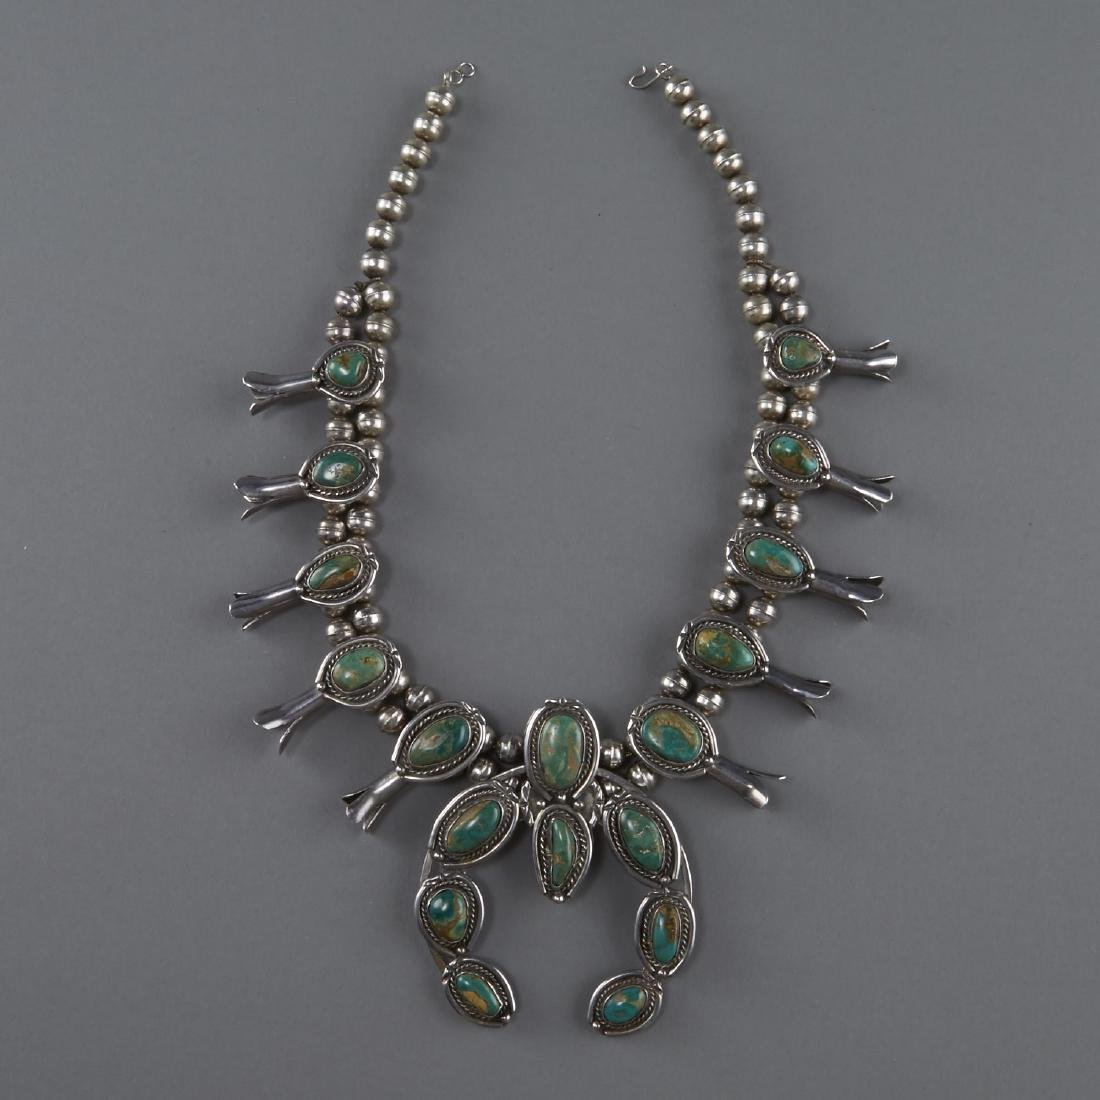 3 Necklaces Squash Blossom, Silver, Turquoise - 2